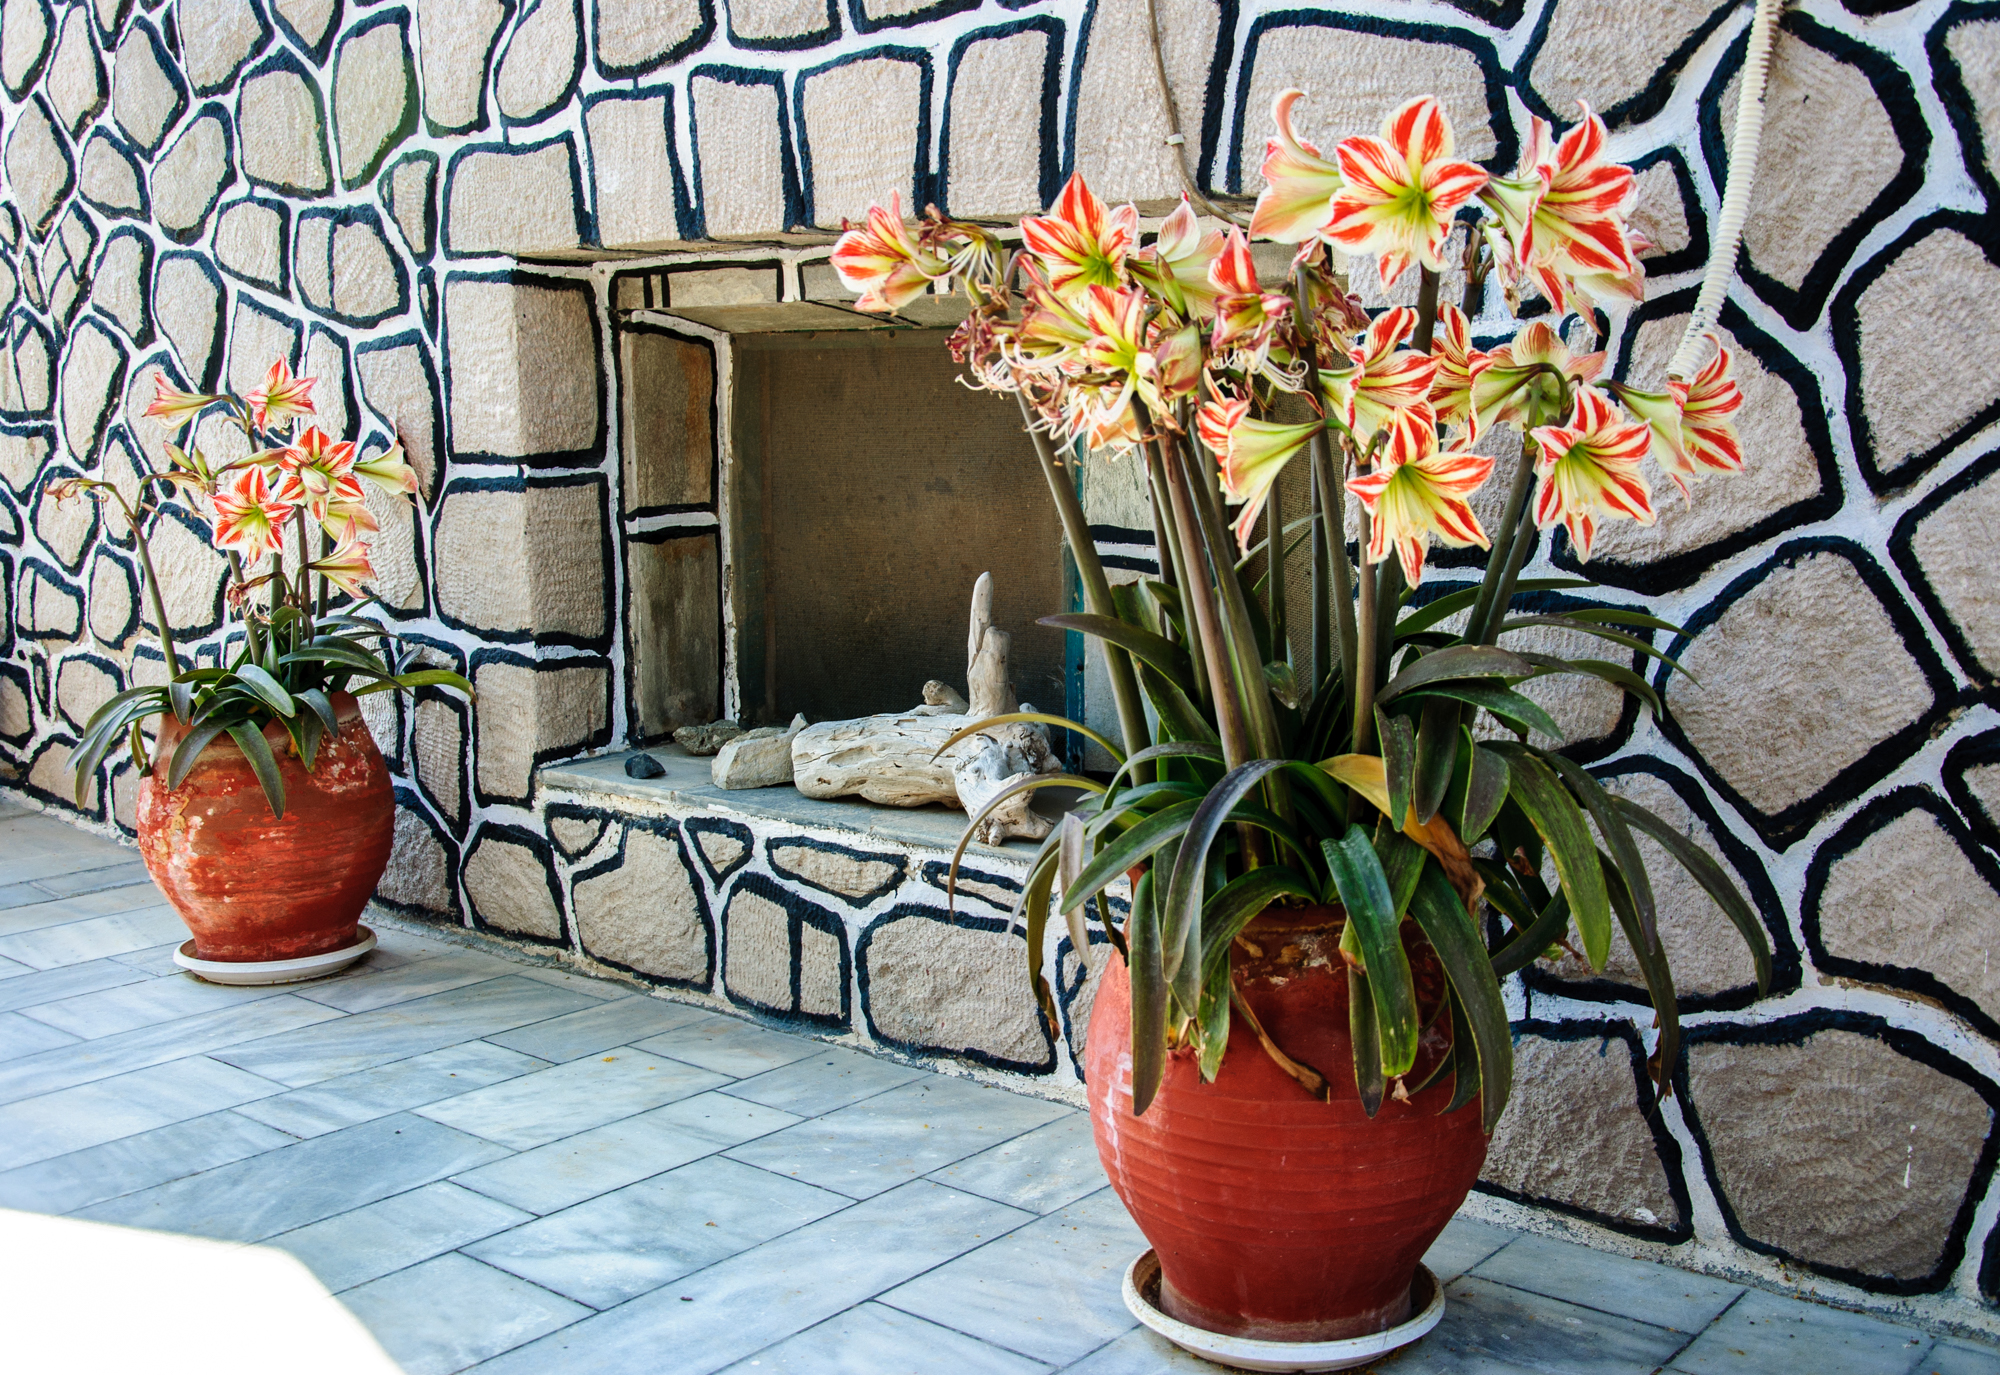 Milos hotel Christina decoration of terrace